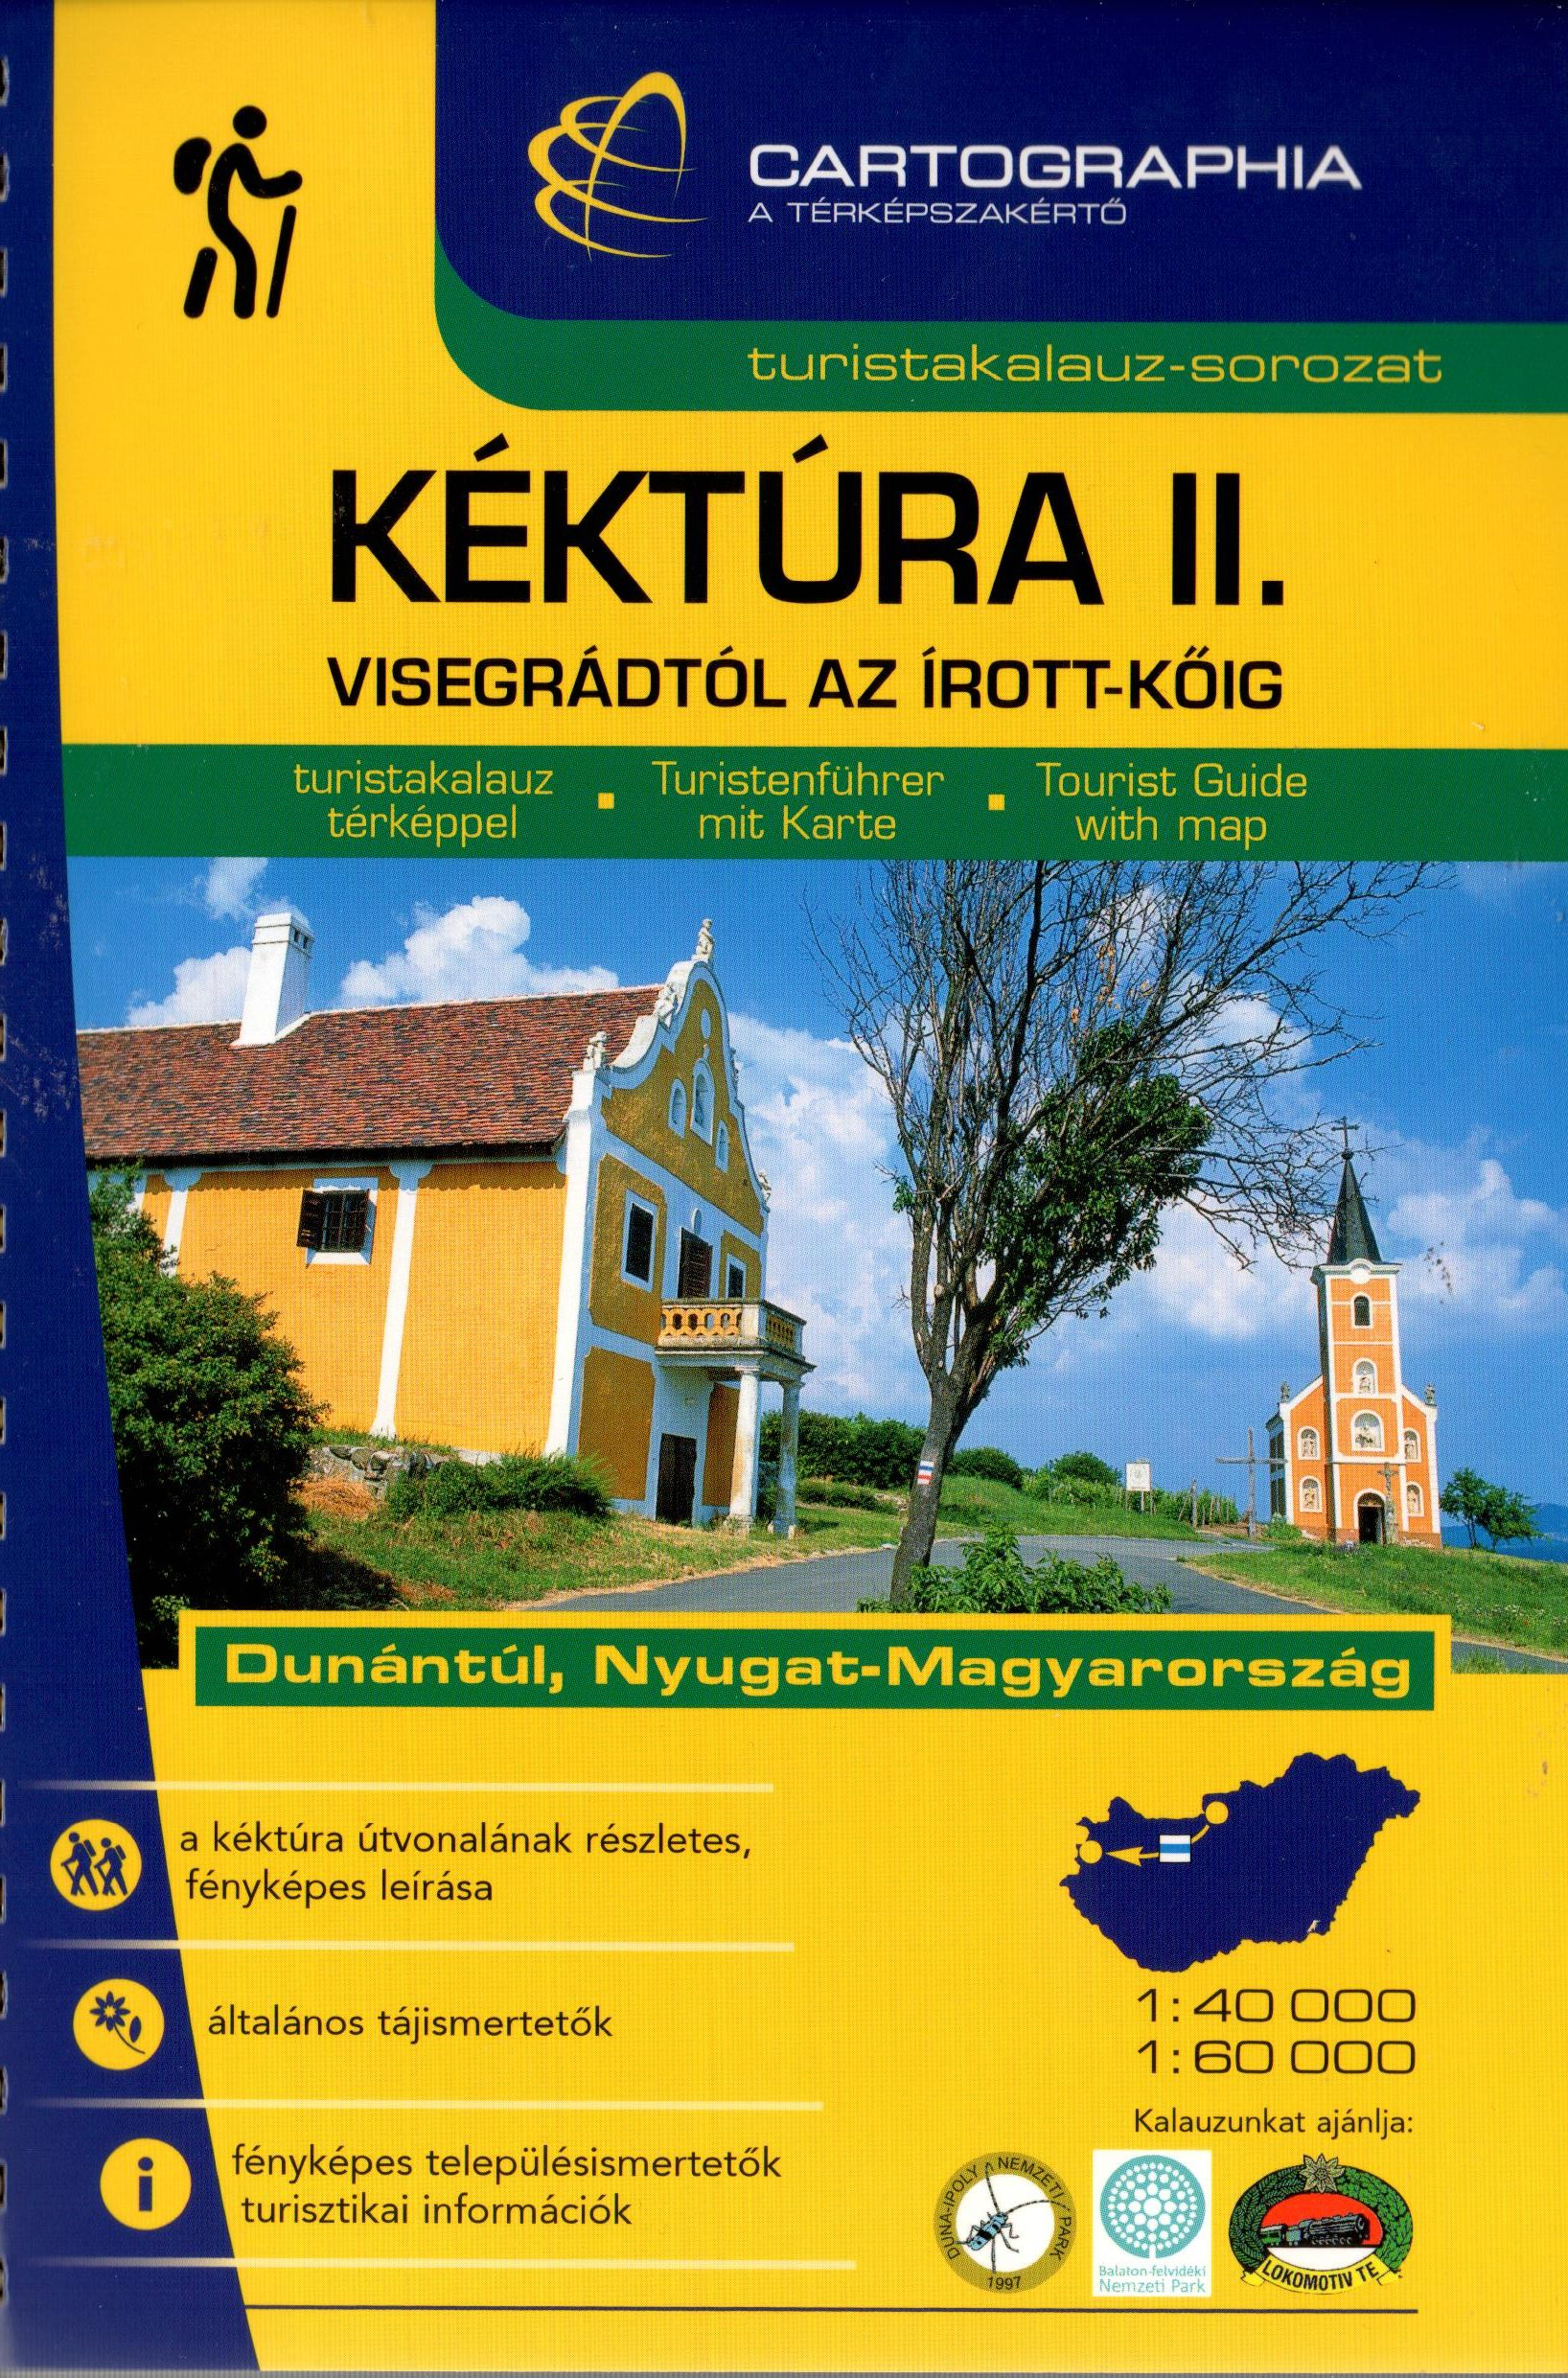 NW-Hungary: Írottkő (Austrian border)-Visegrád. Detailed tourist info in Hungarian